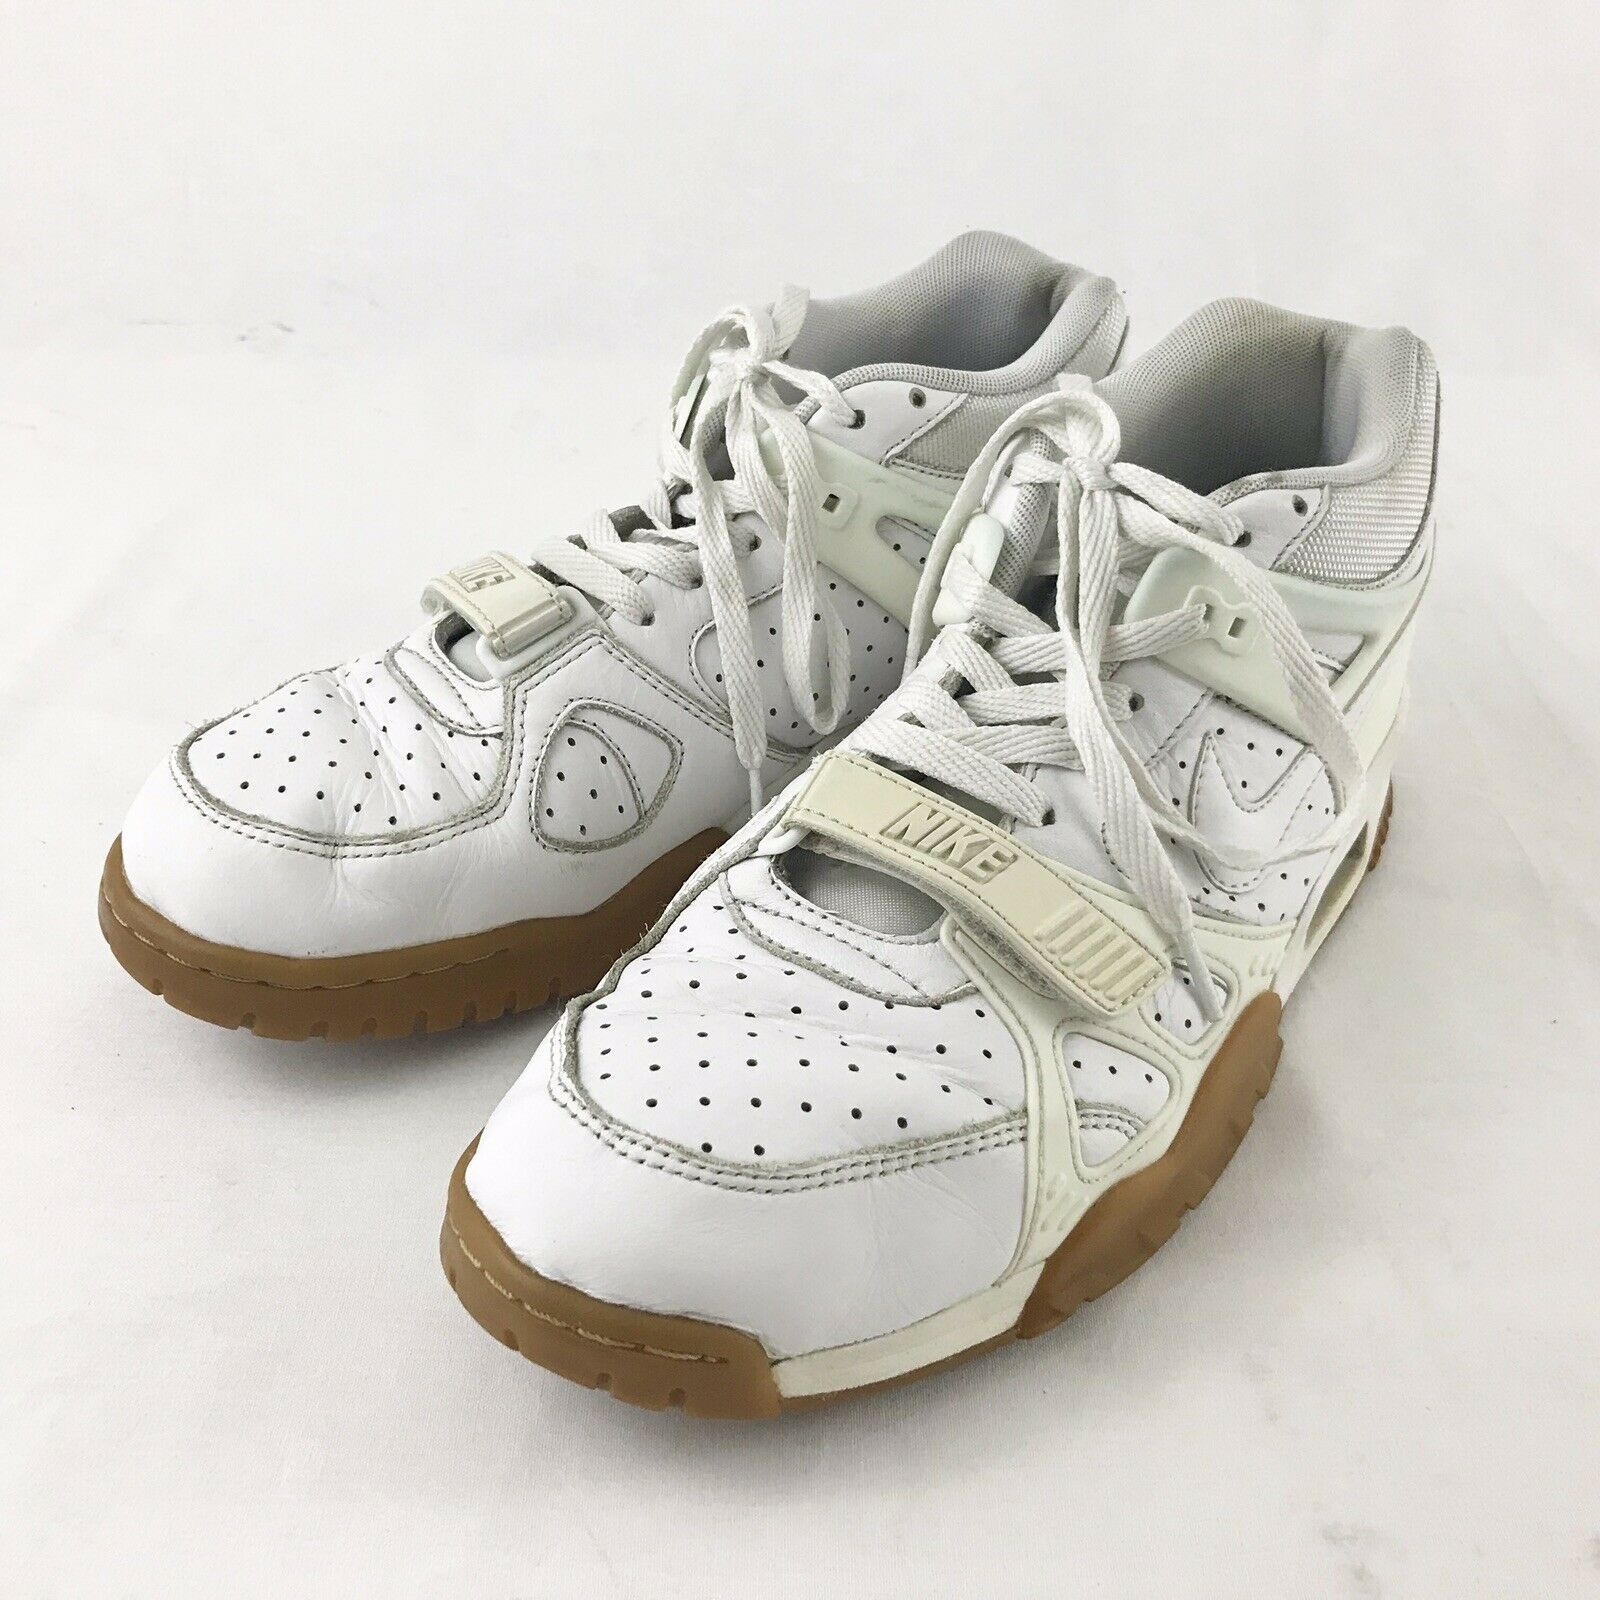 Nike Air Trainer 3 shoes Mens Size 12 705426-100 Bo Jackson Off White Gum Sole